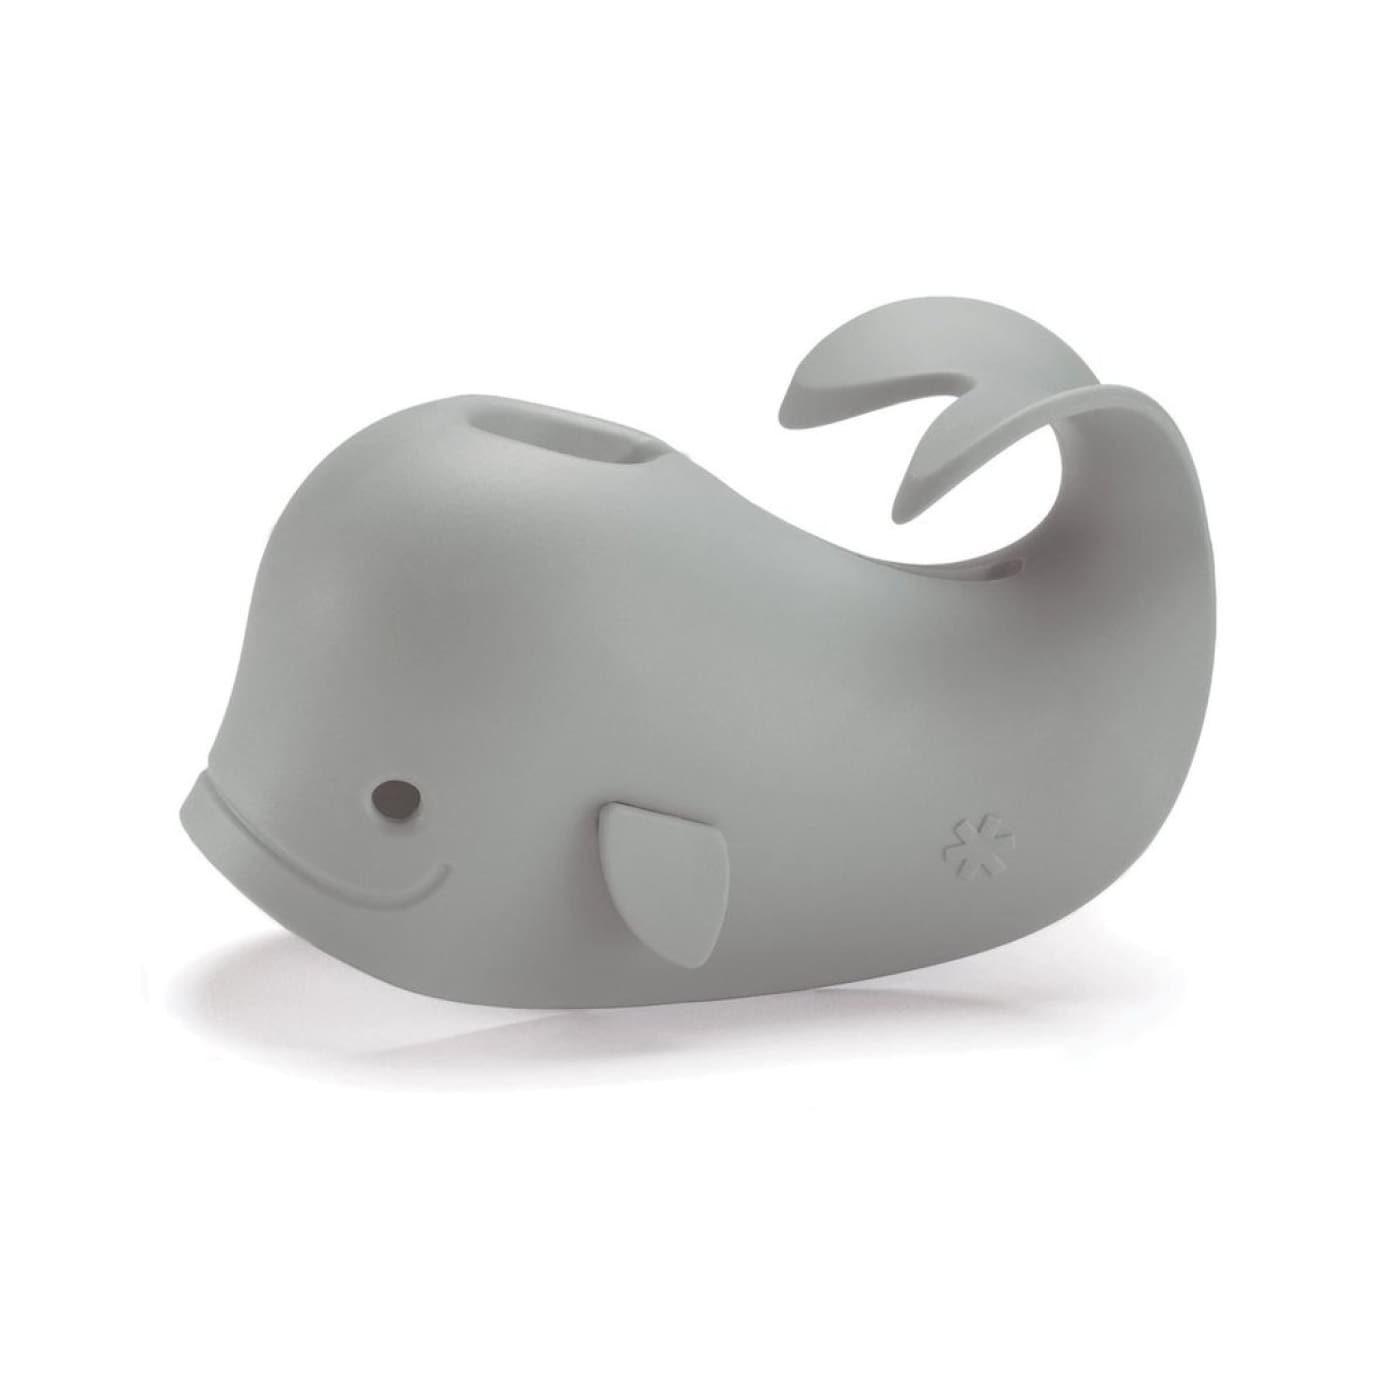 Skip Hop Moby Spout Cover - Grey - Grey - BATHTIME & CHANGING - BATH TOYS/AIDS